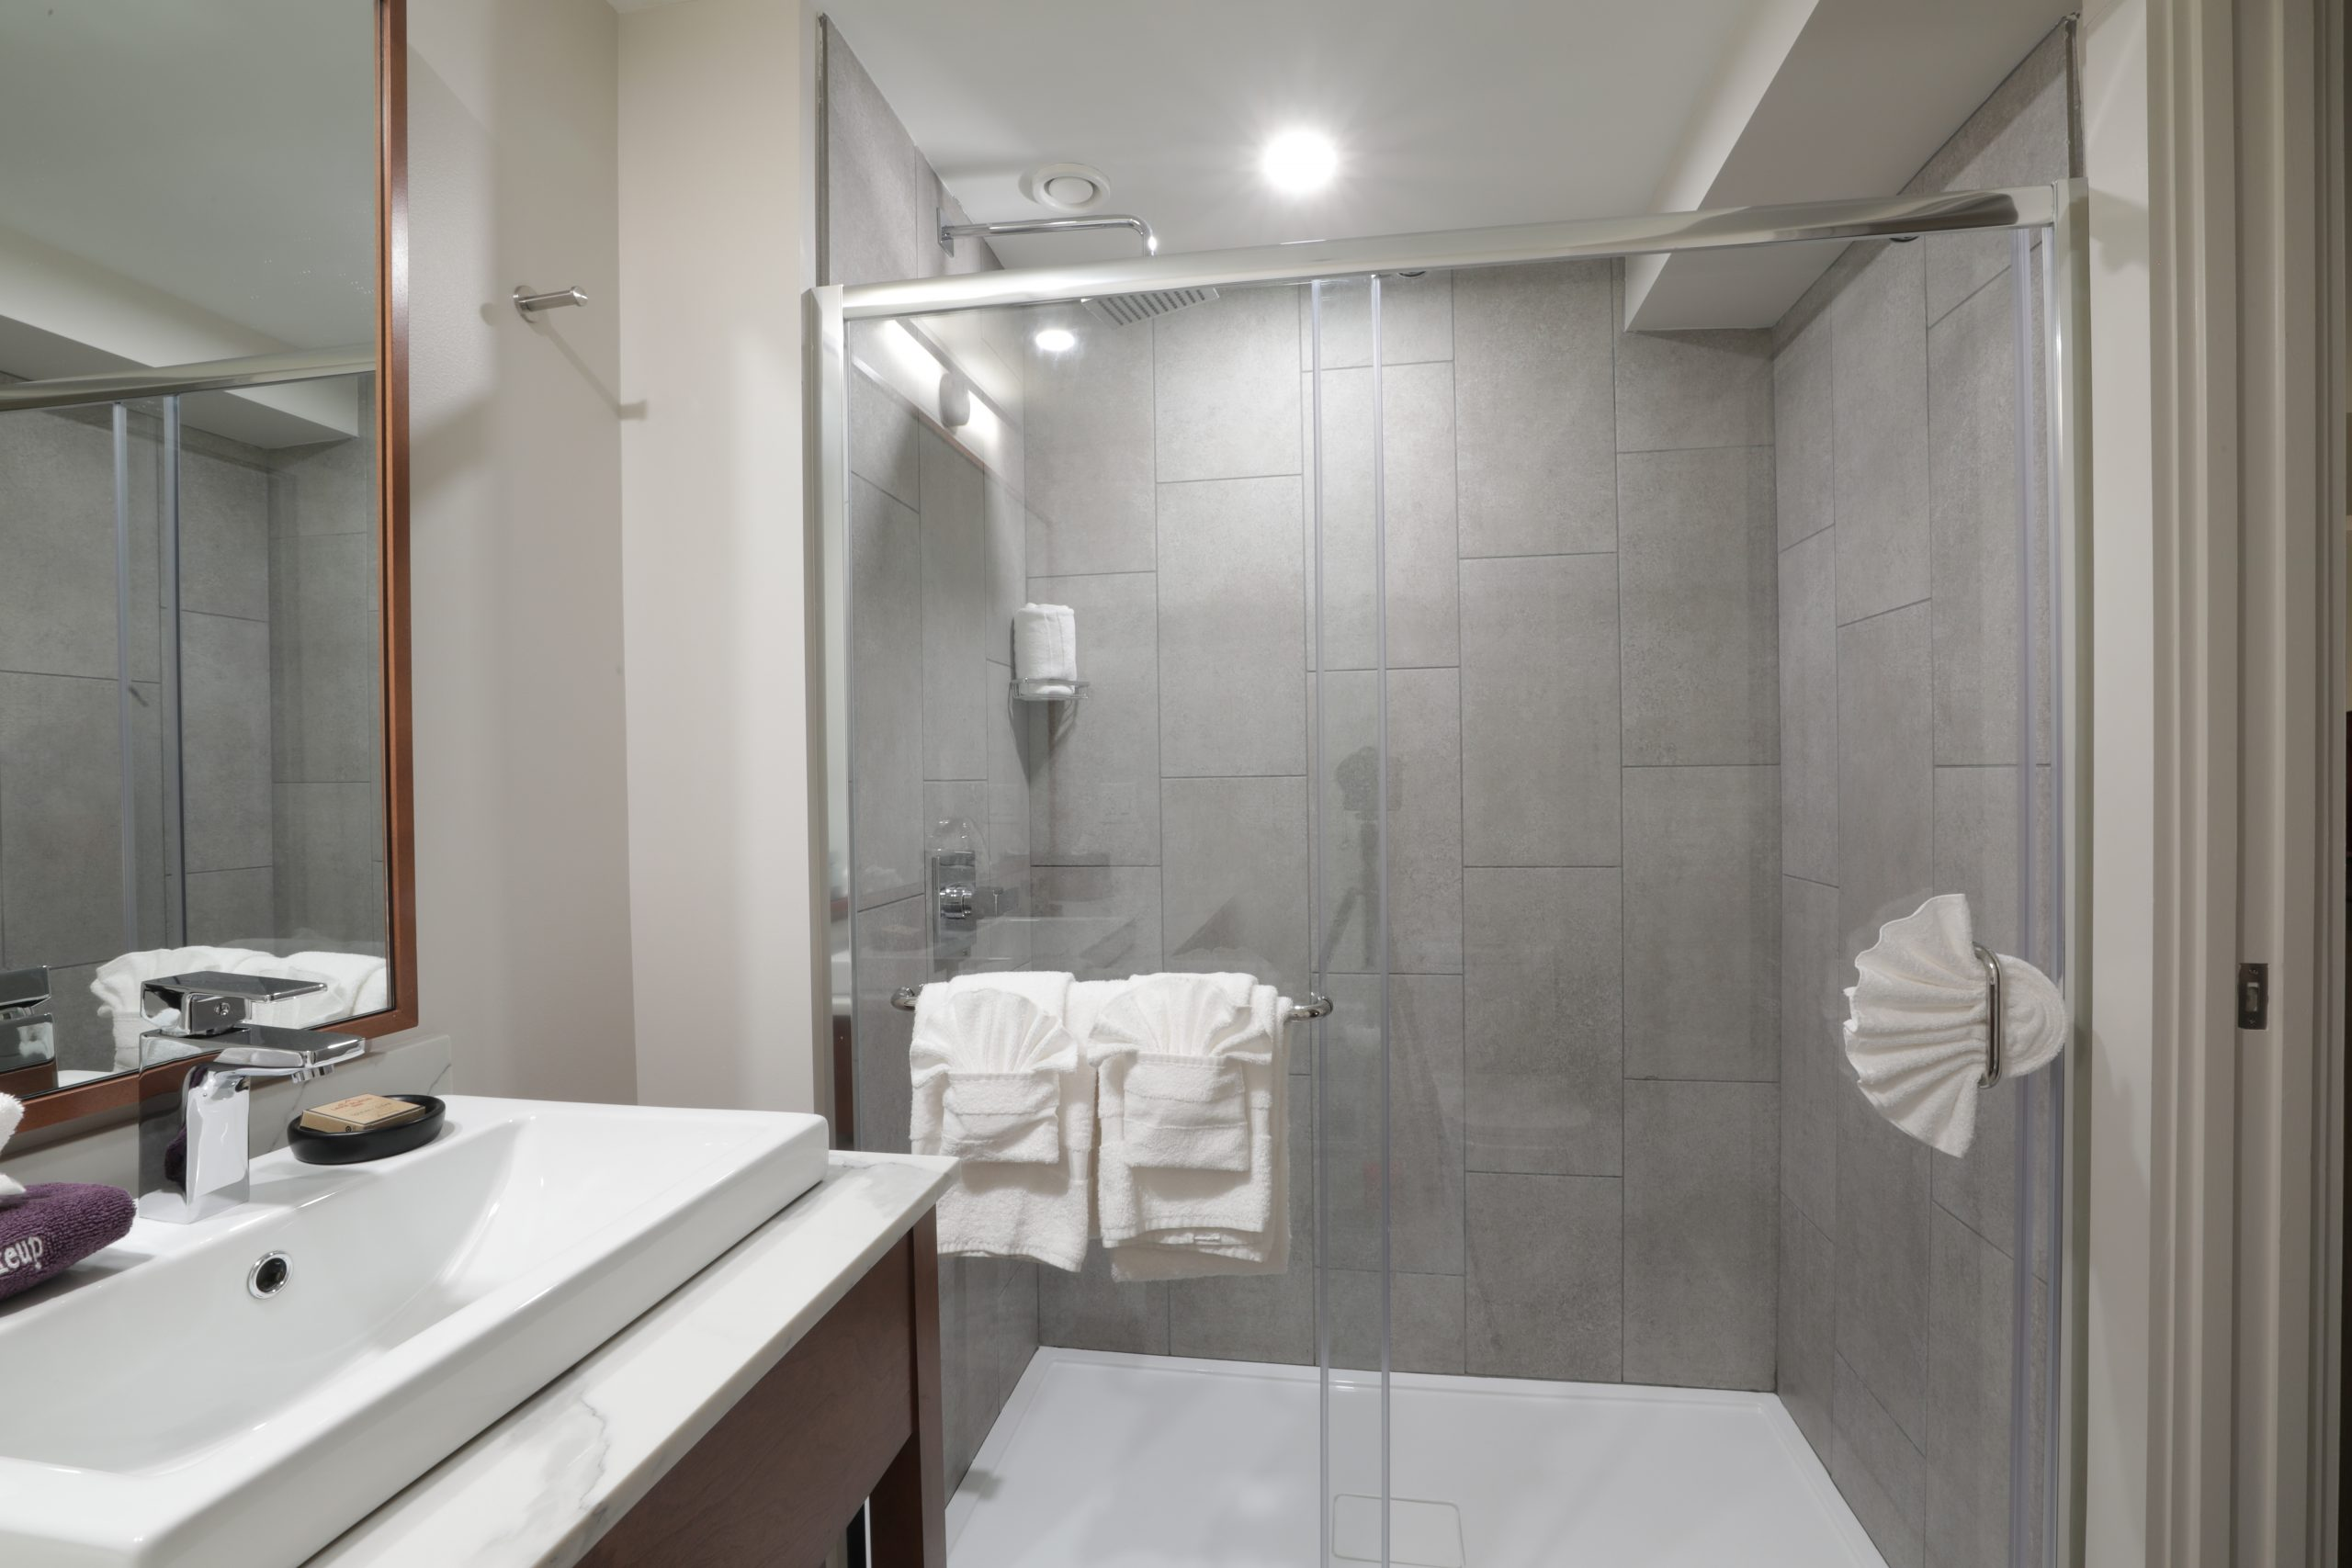 Glass walk in shower and large bathroom vanity and sink